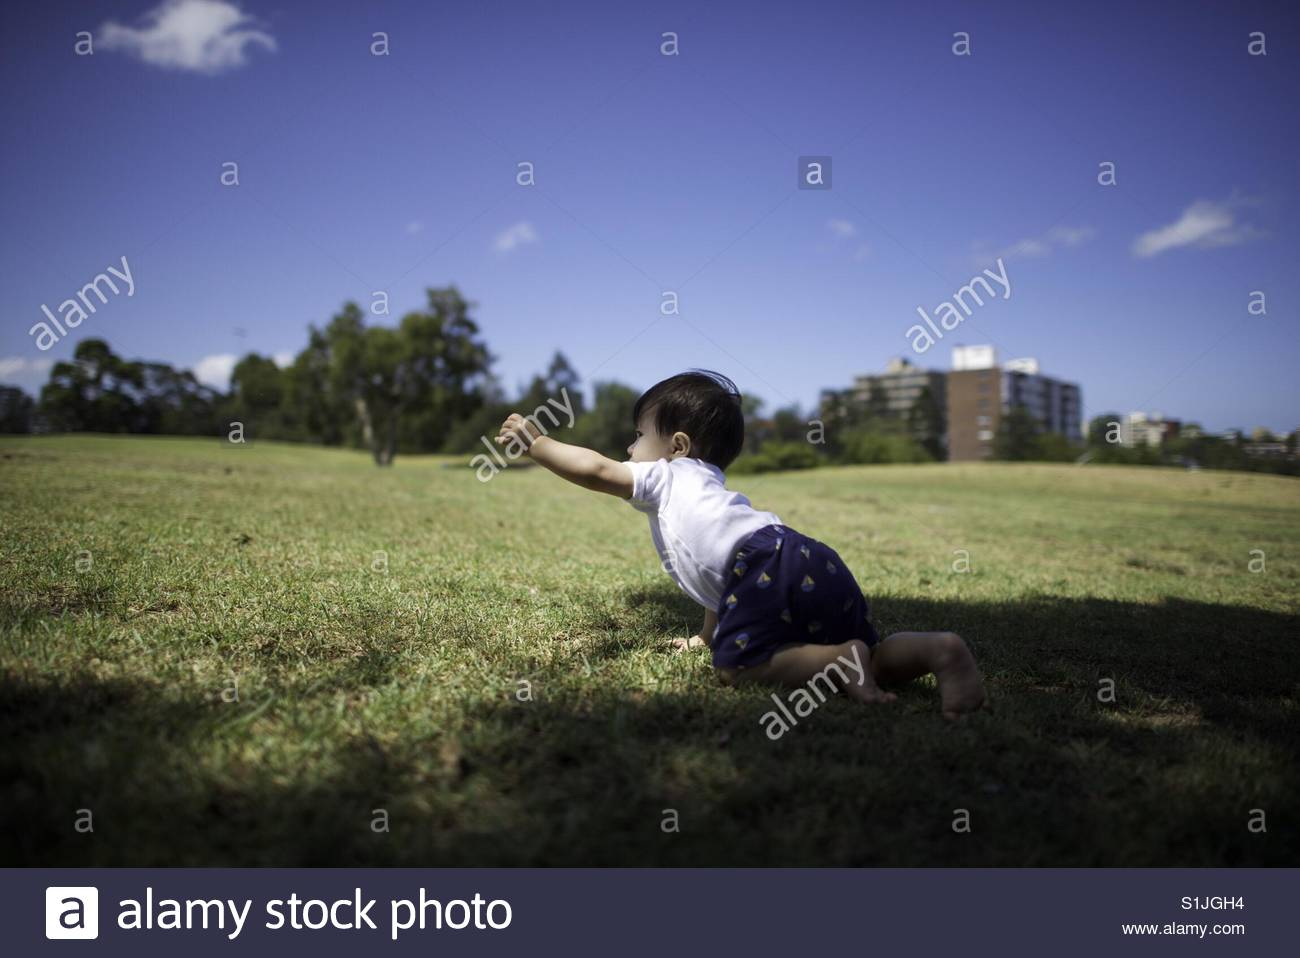 Reaching out - Stock Image